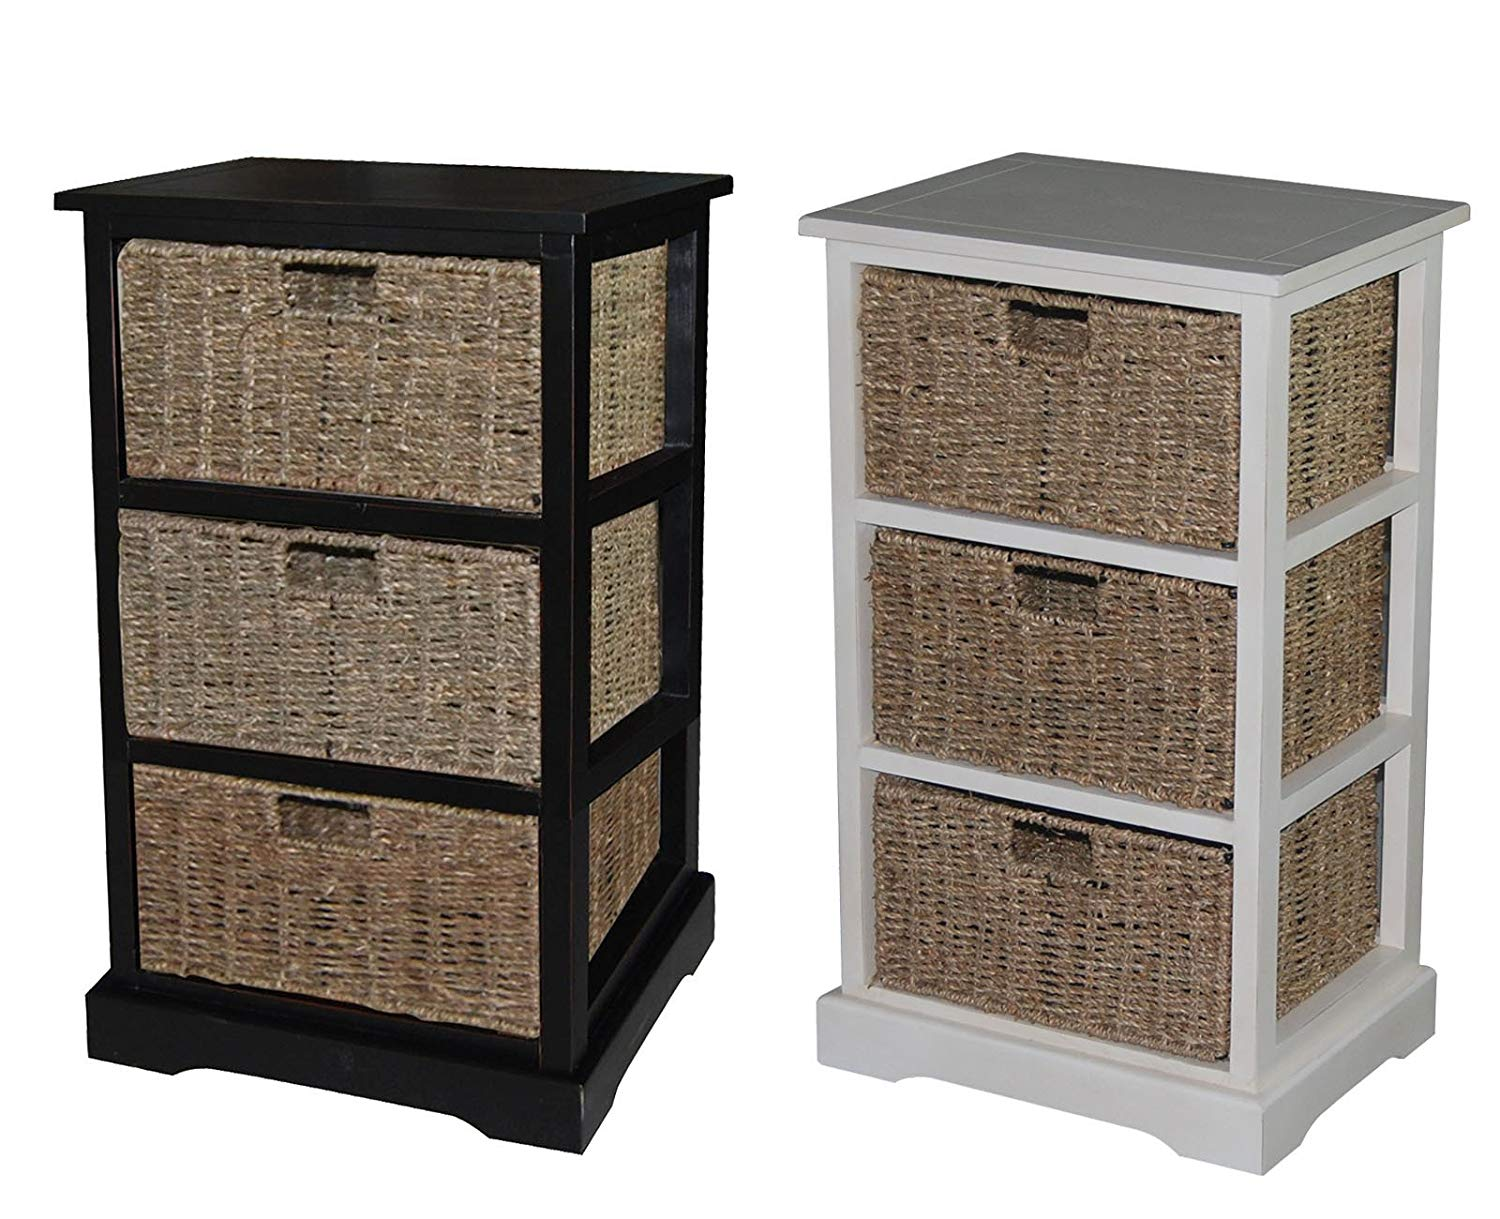 Urbanest 1000479 Accent Storage Cabinet with Three Seagrass Basket Drawers, Antique Black